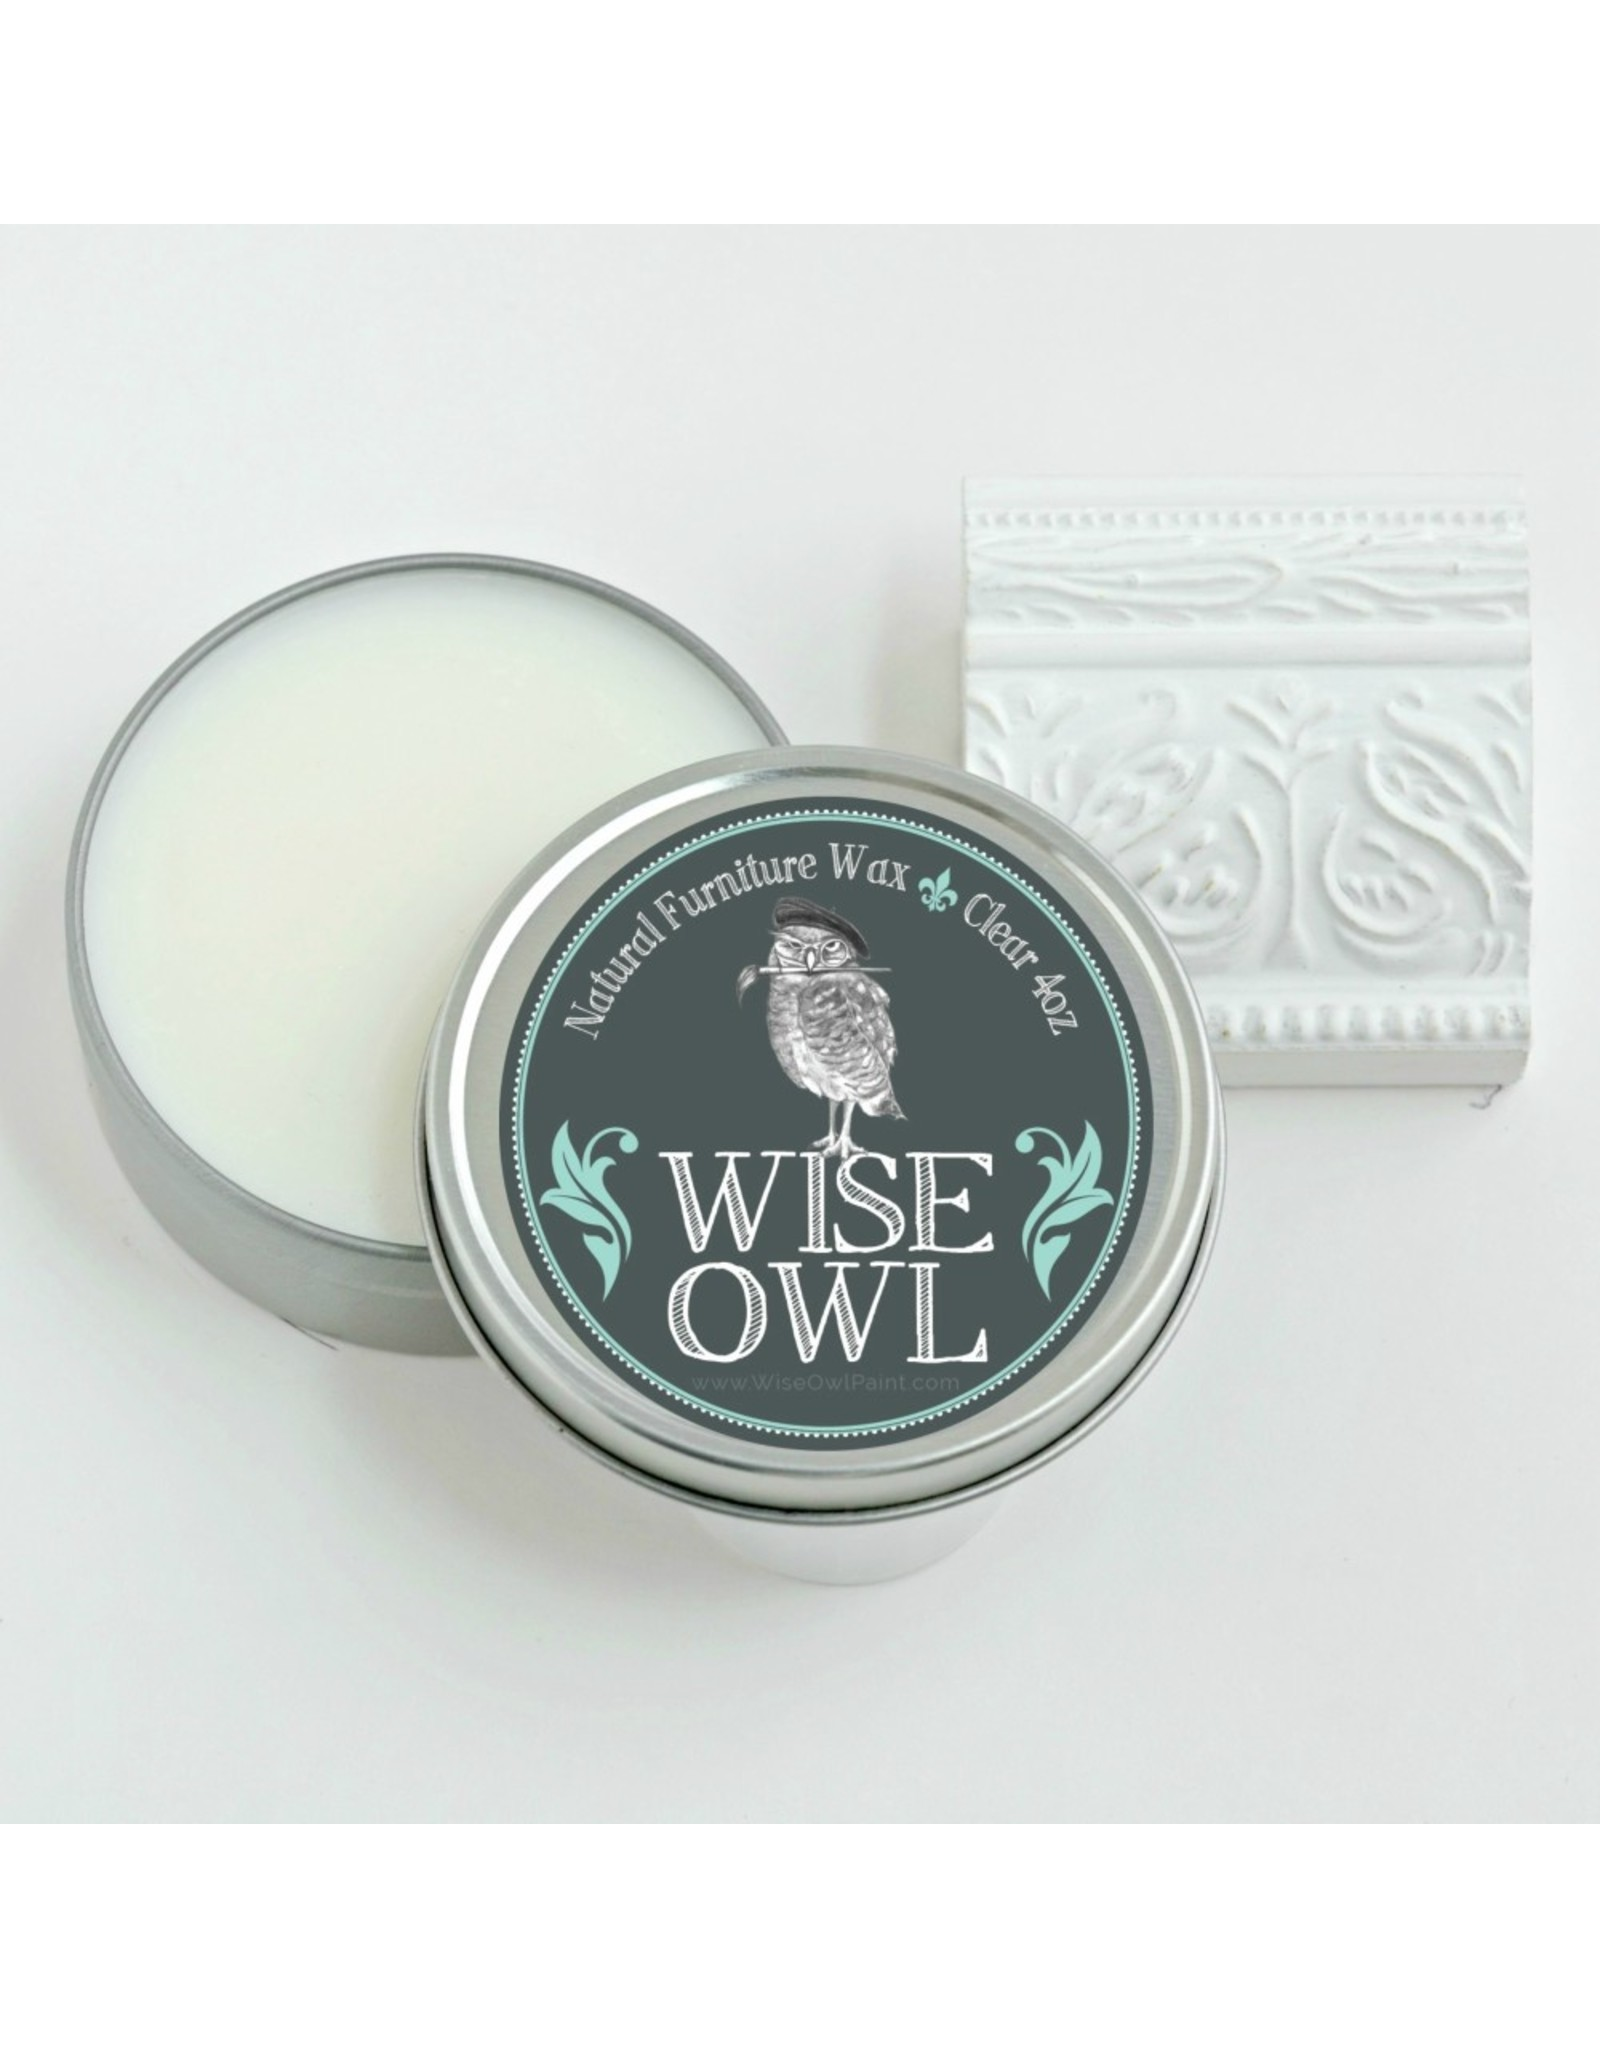 Wise Owl Paint Natural Furniture Wax - Clear 8oz